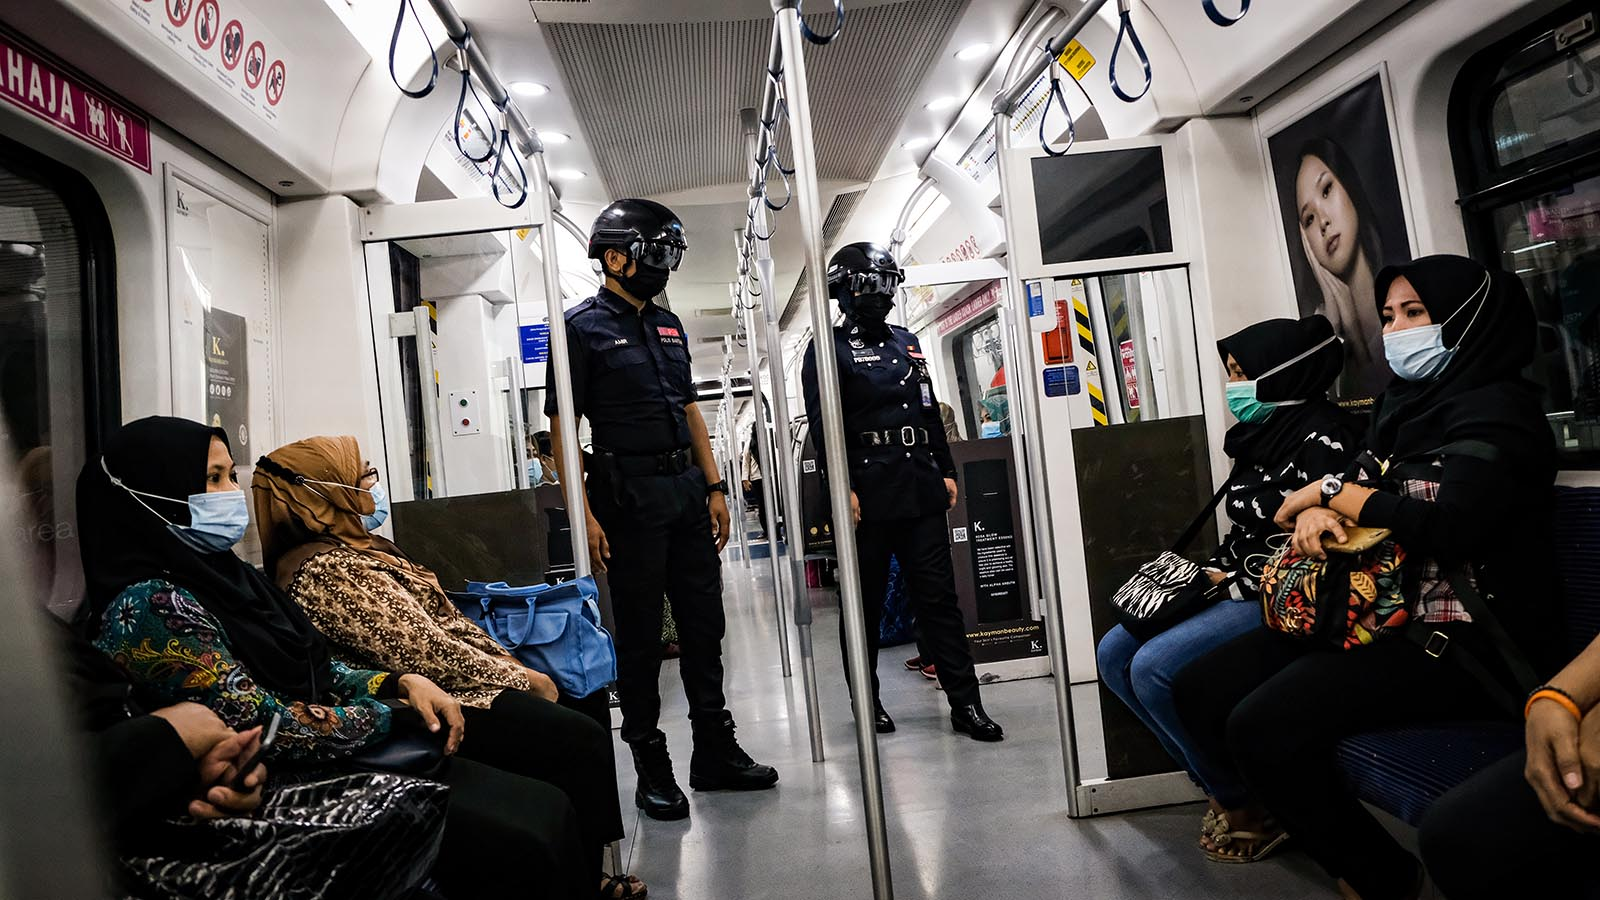 Officers of Keretapi Tanah Melayu Berhad, the main rail line in Malaysia, wear a special helmet that's able to scan the temperature of civilians at KL Sentral, Kuala Lumpur on December 2, 2020.